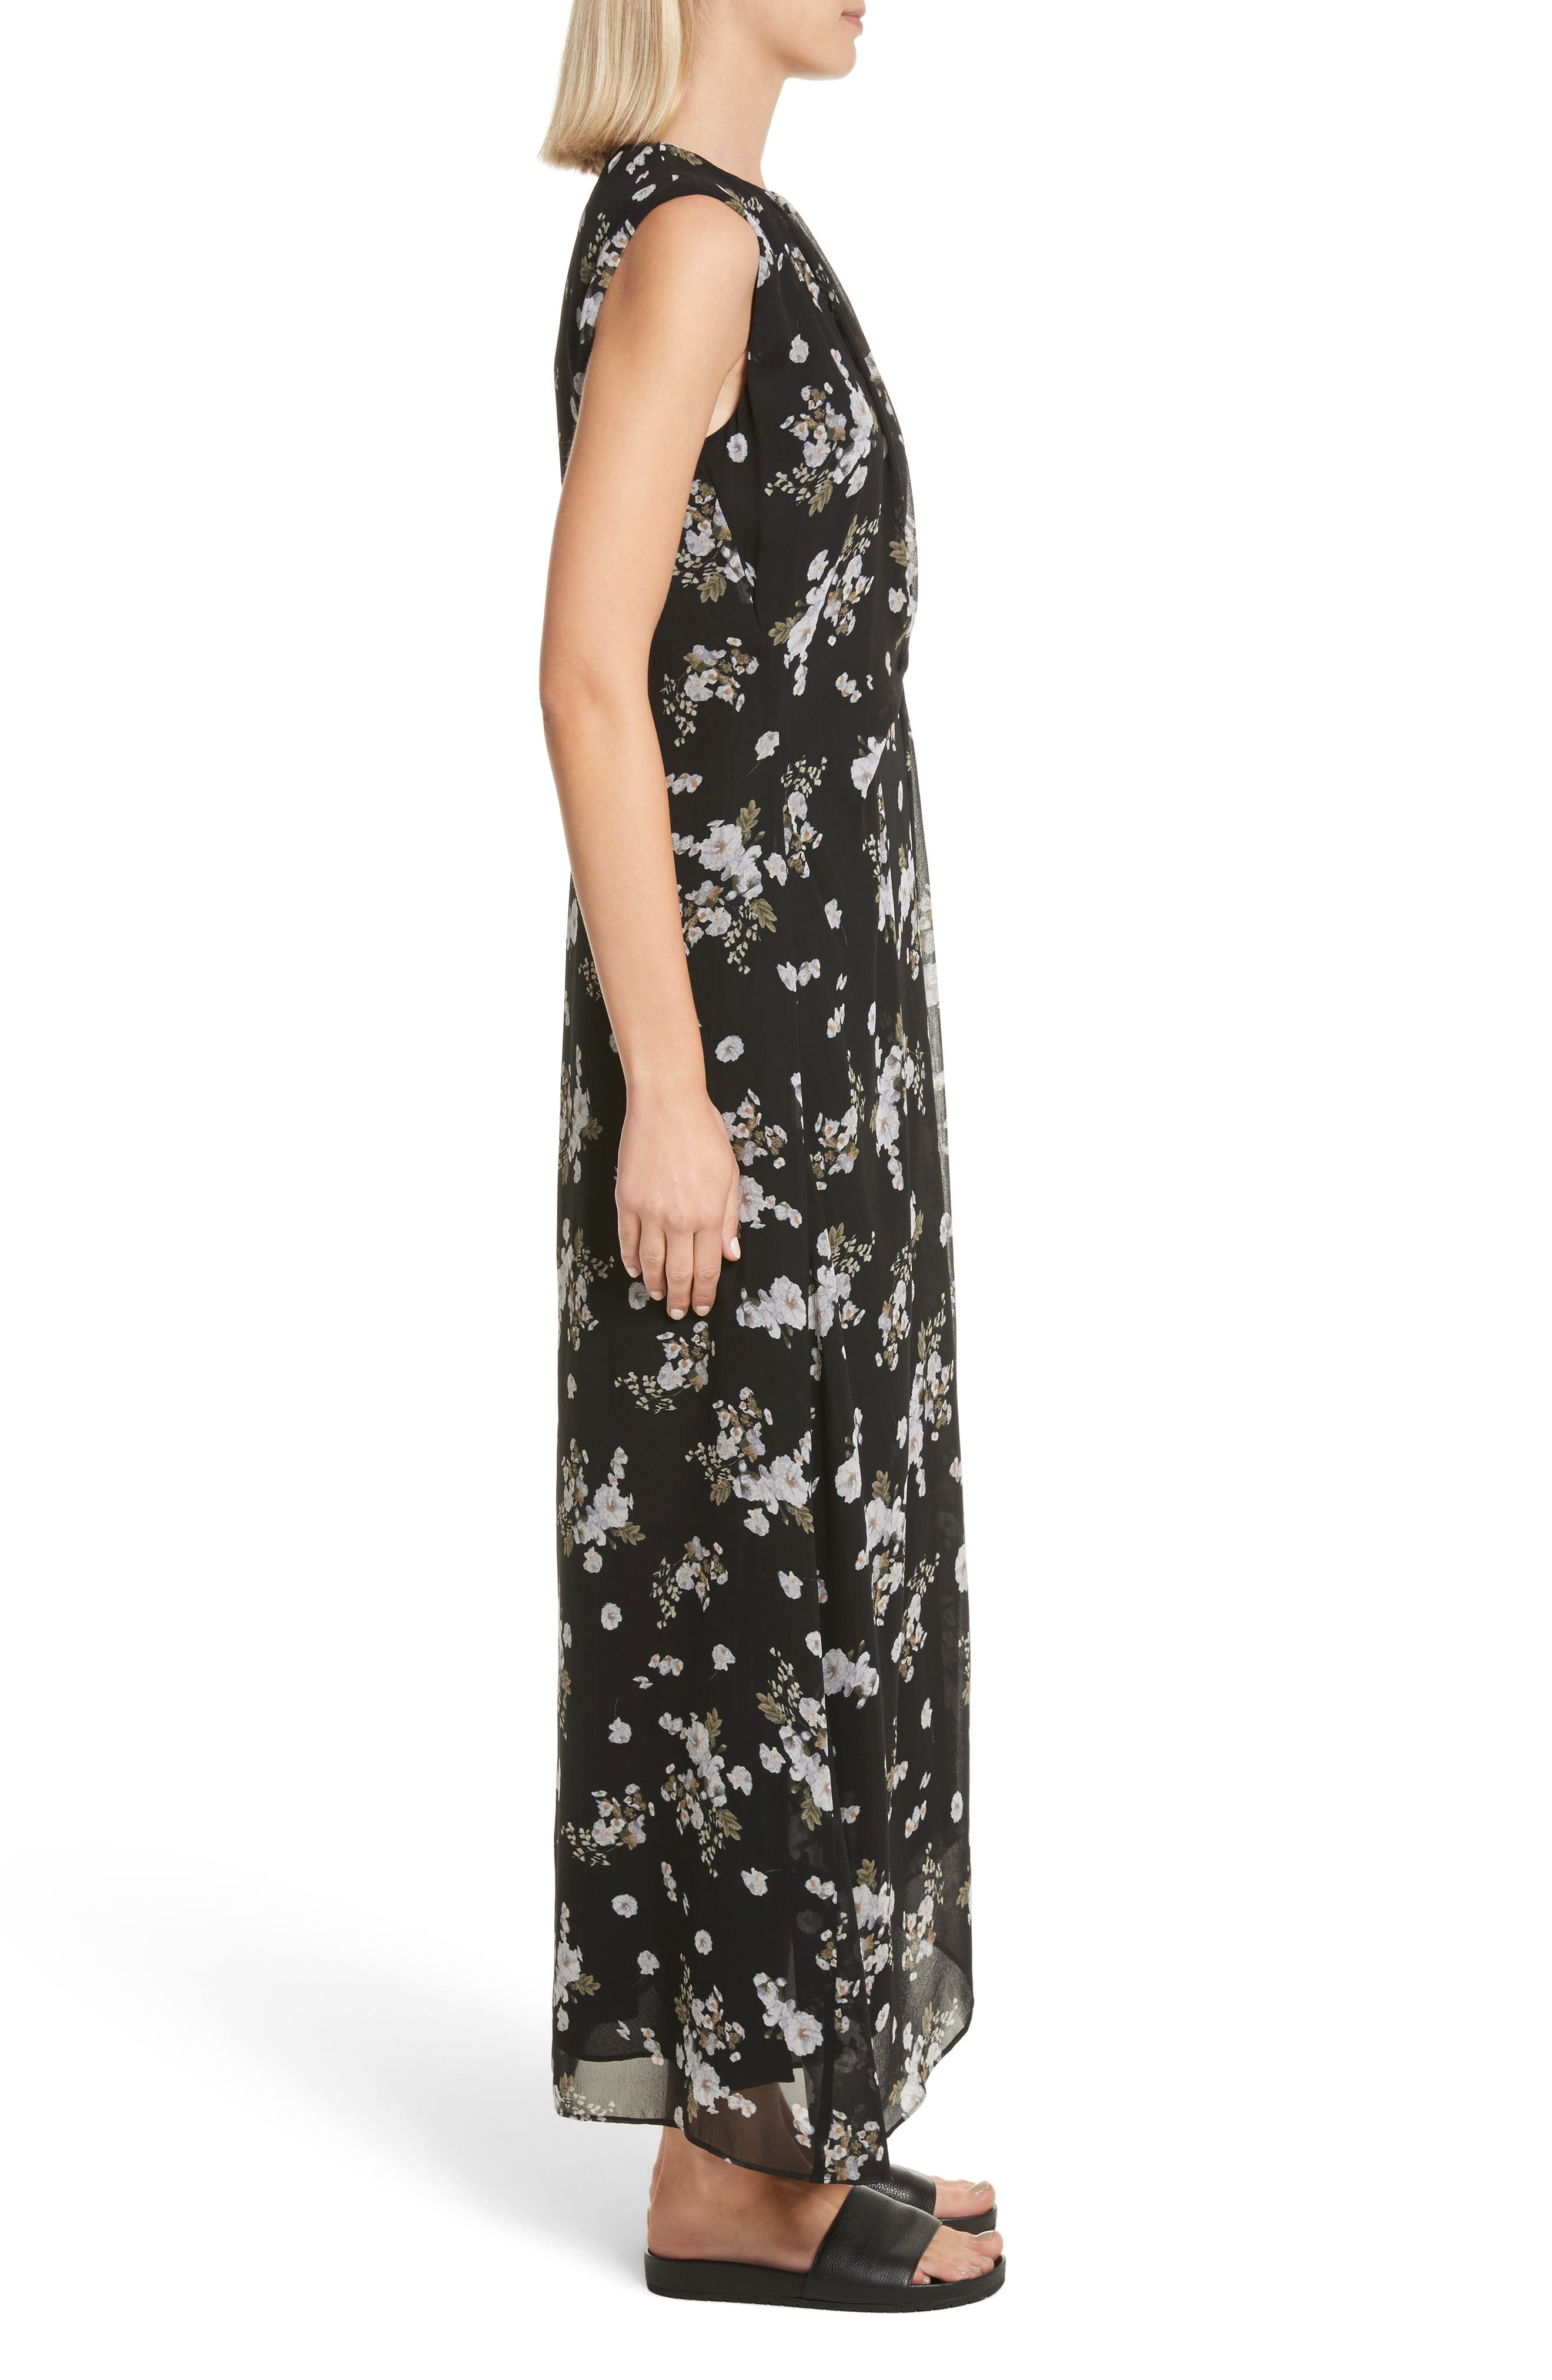 Tossed Floral Side Drape Silk Maxi Dress,                             Alternate thumbnail 3, color,                             001